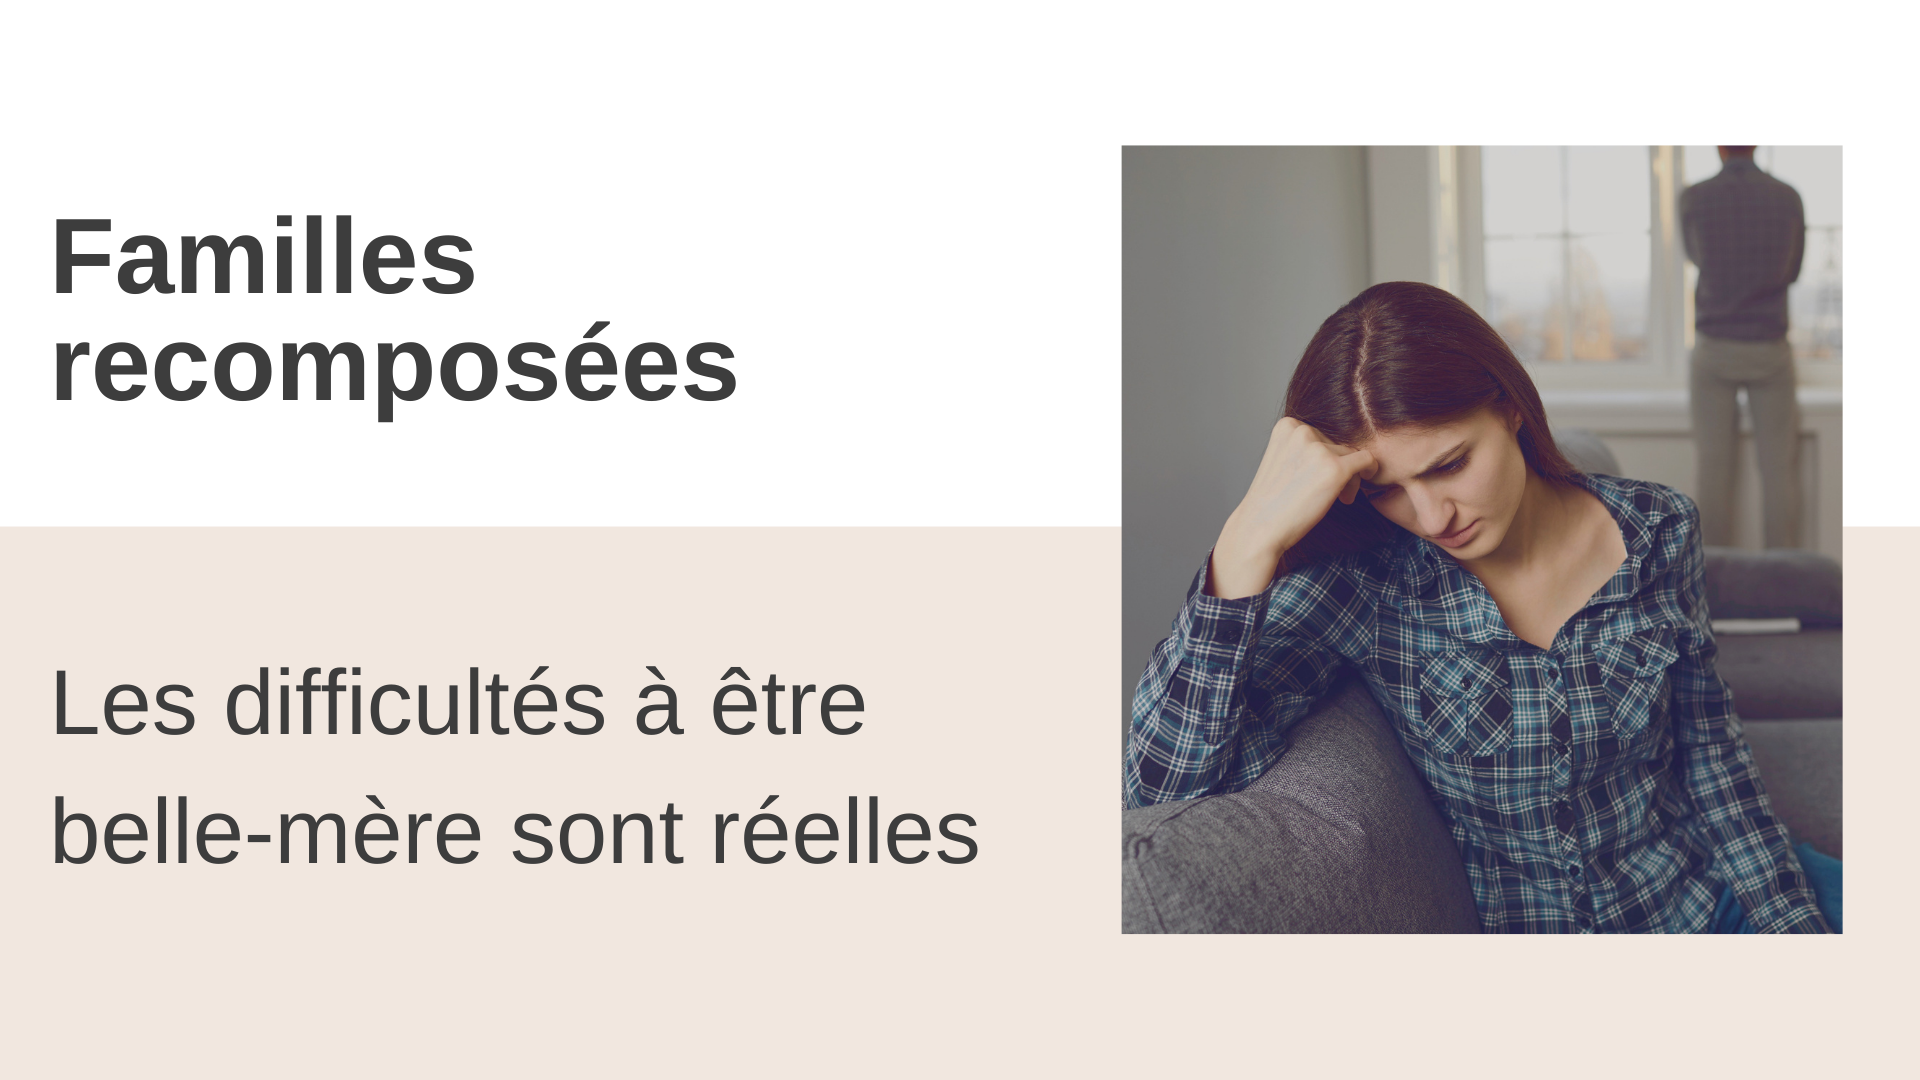 familles-recomposees-difficultes-belle-mere